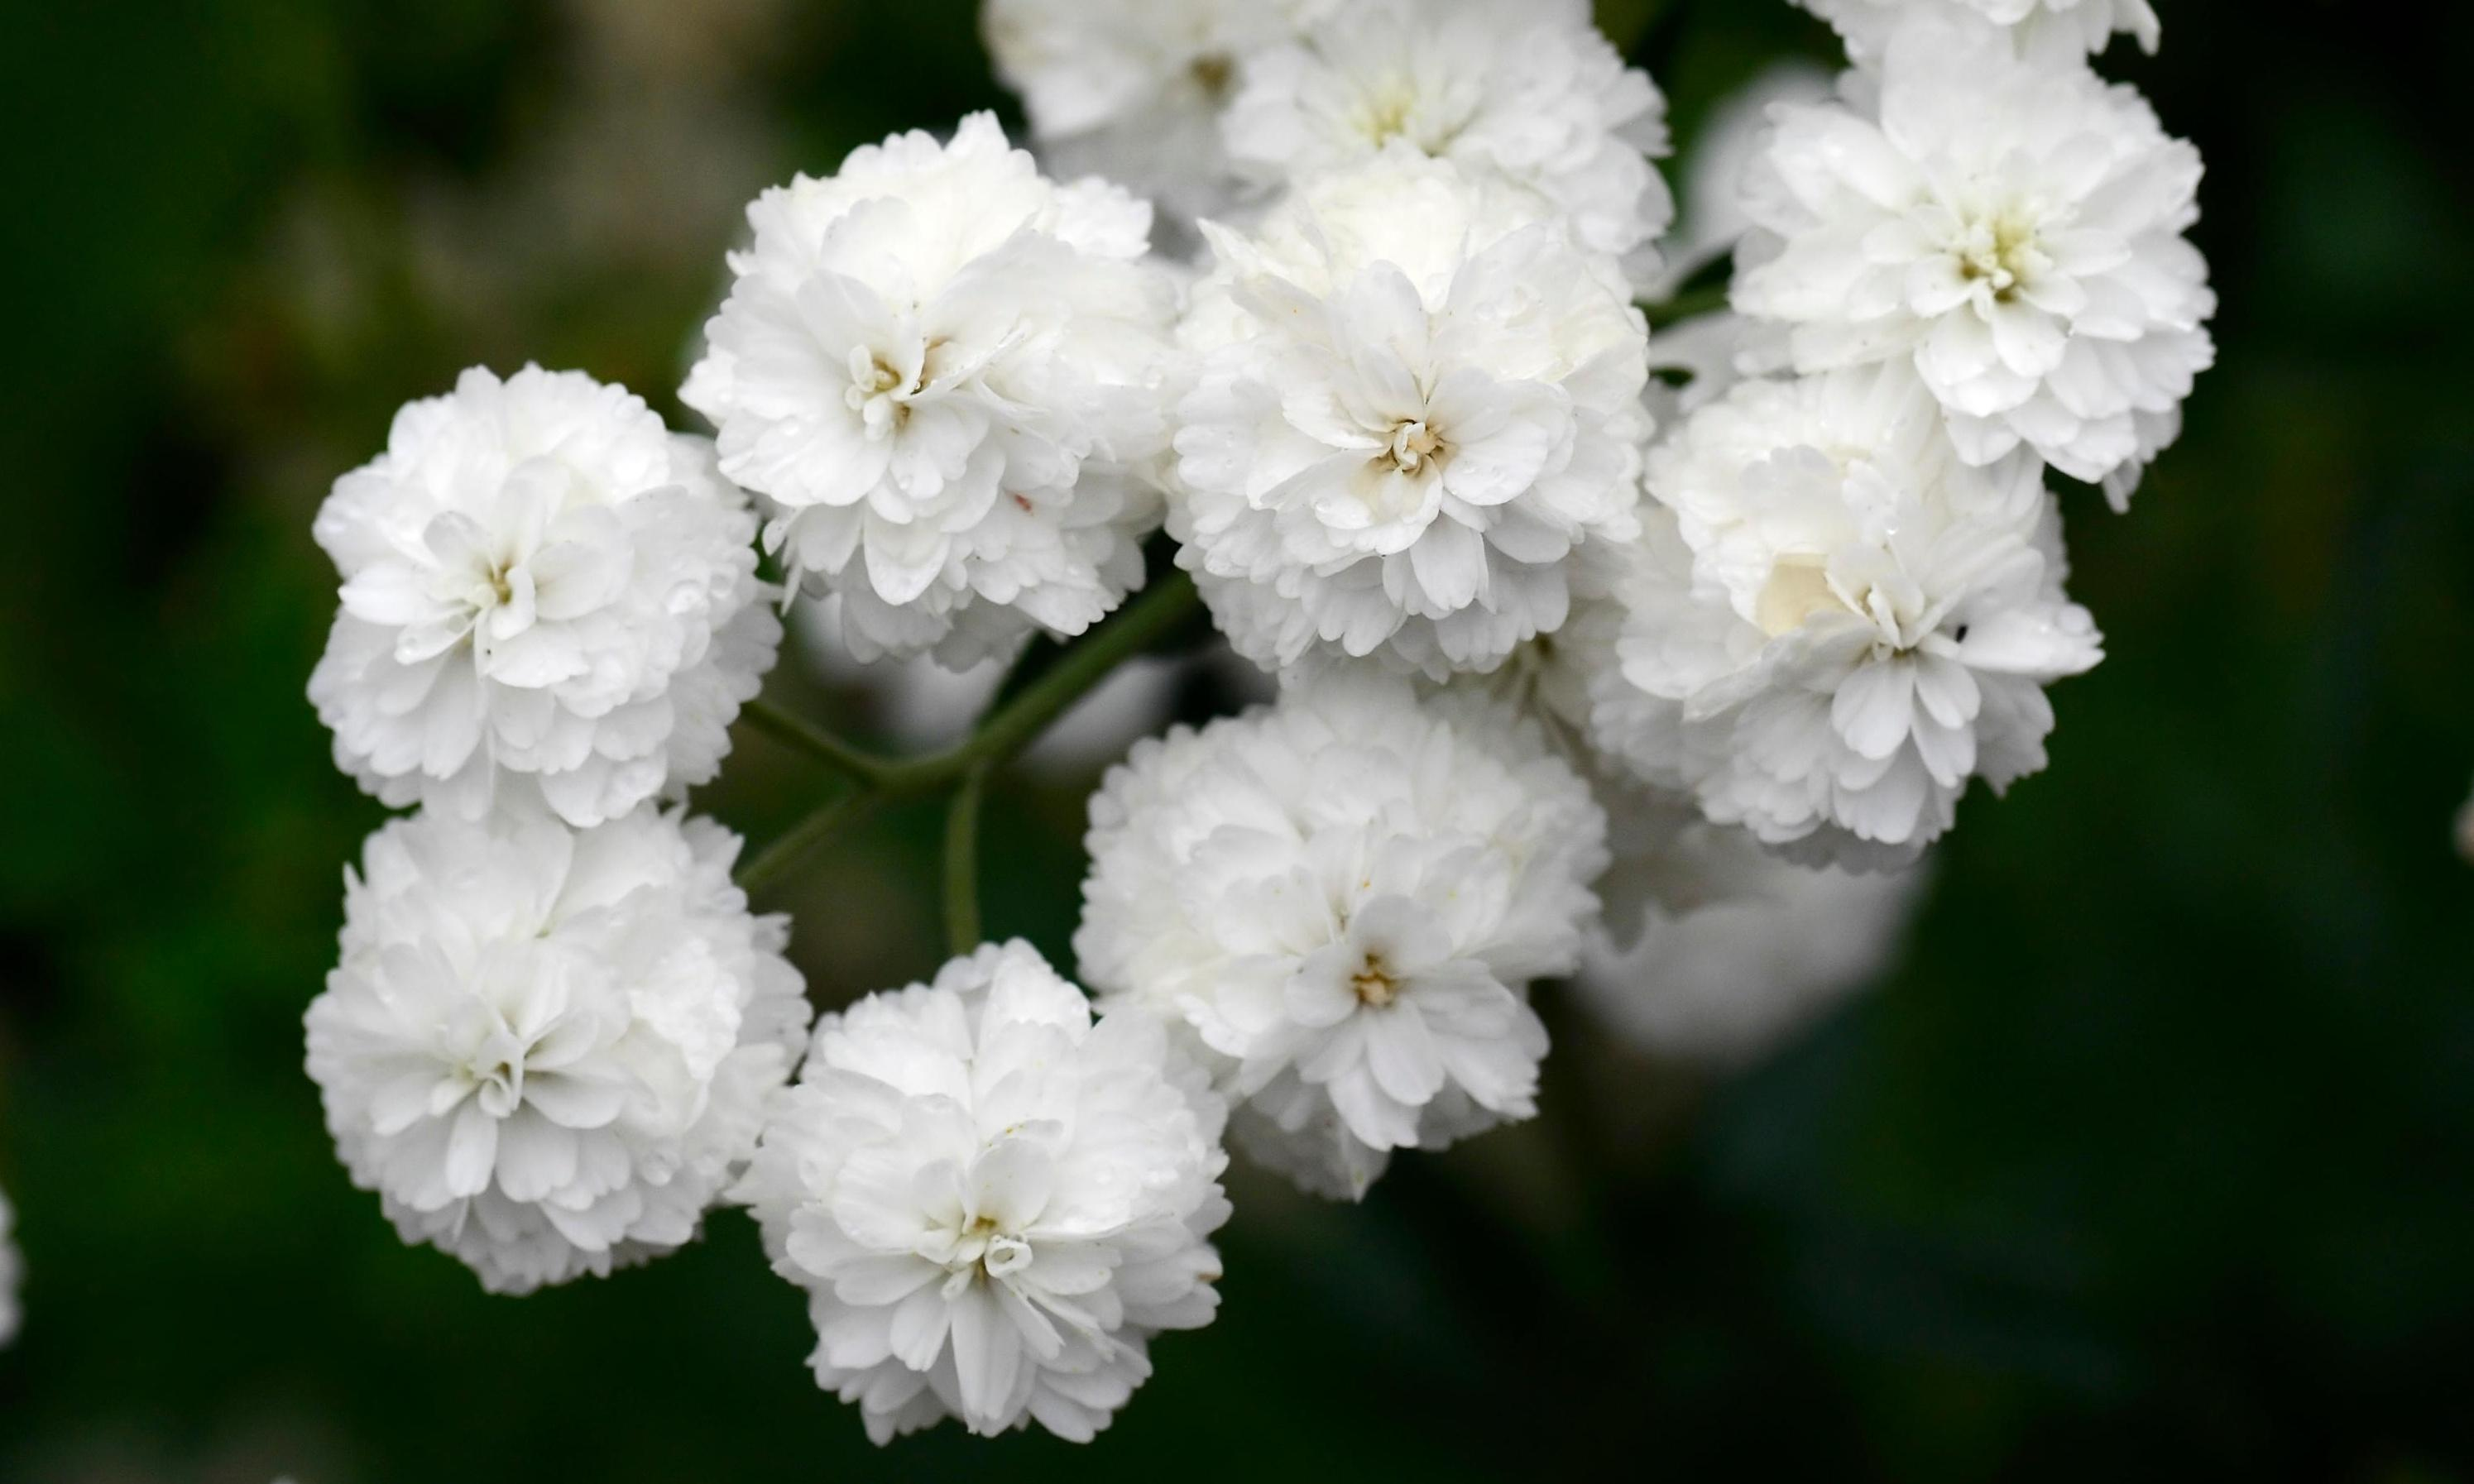 Gardening tips: plant sneezewort for sprays of tiny white flowers all summer long